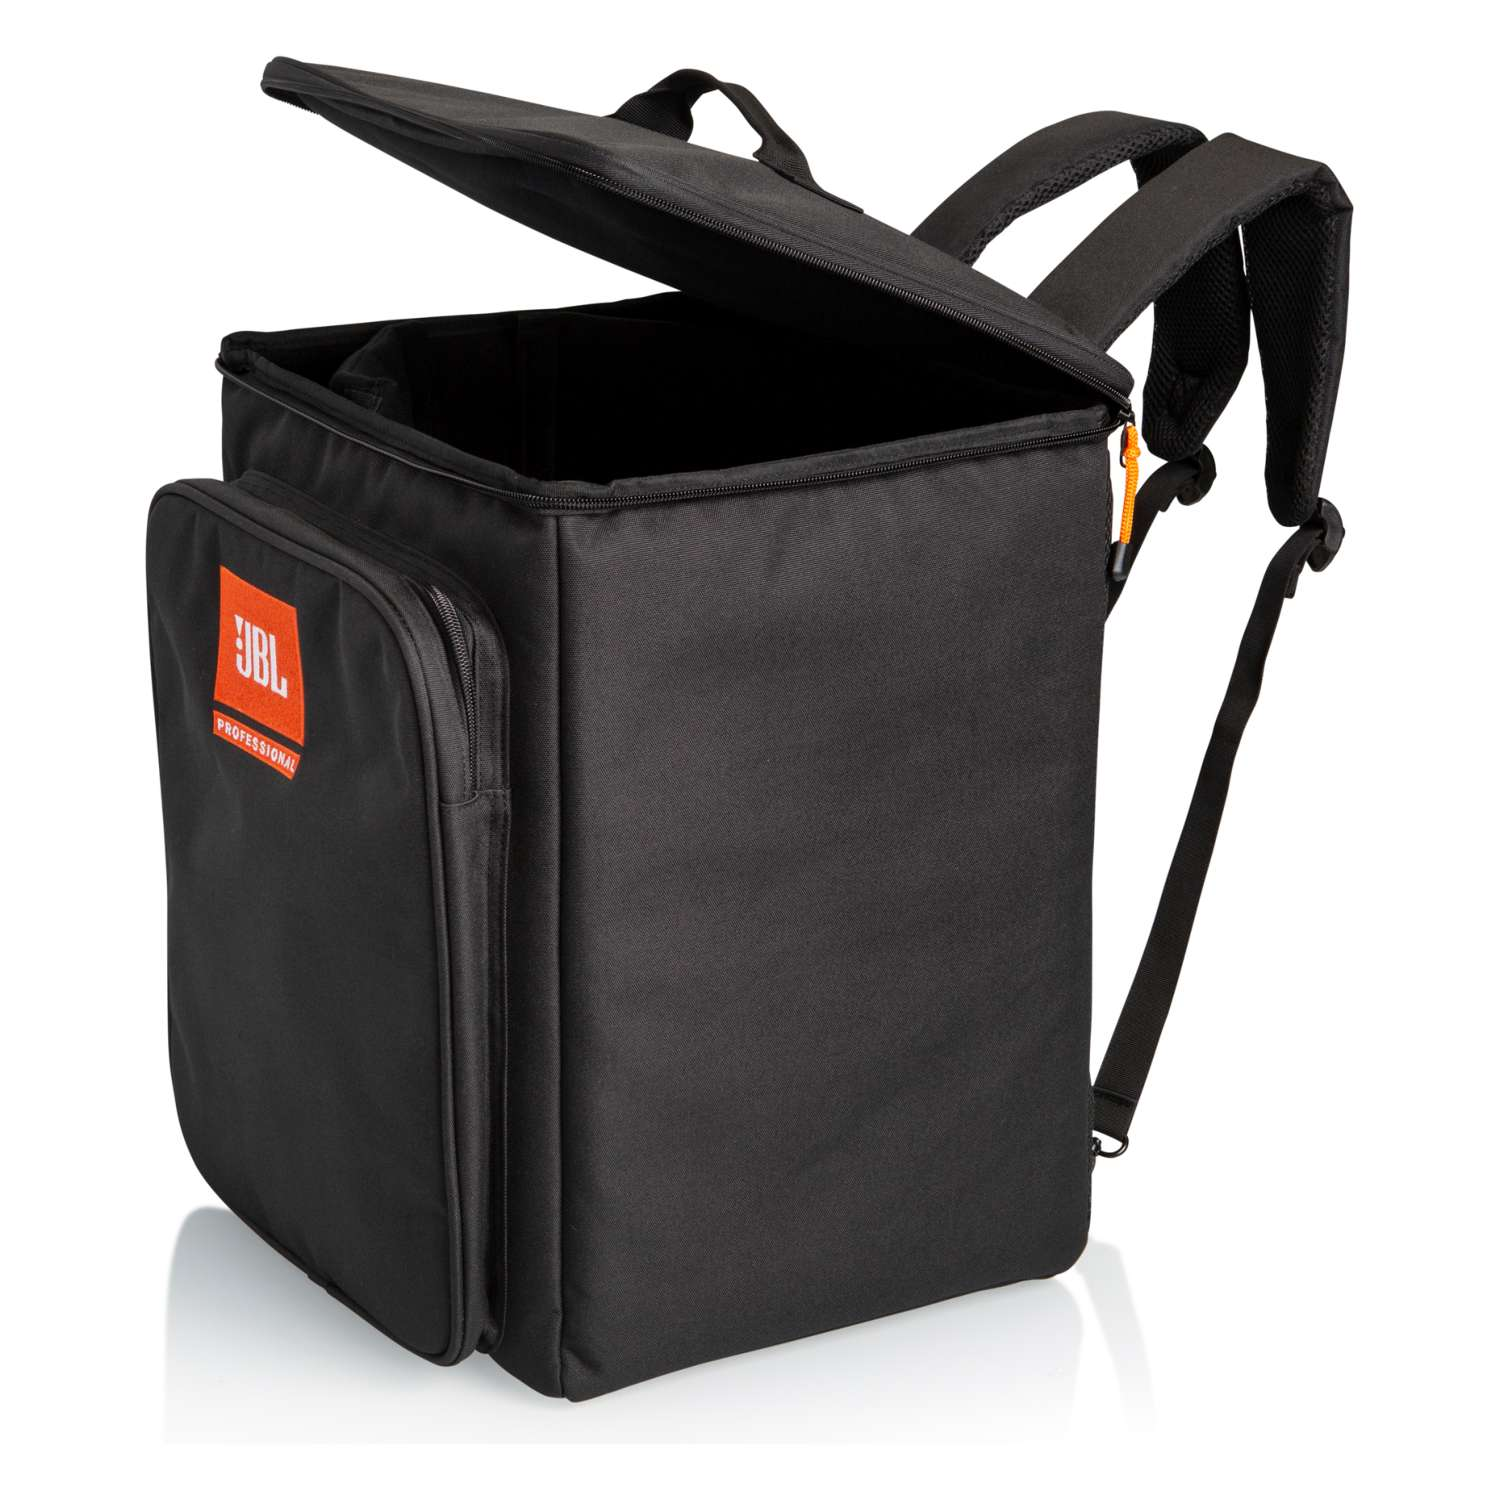 JBL EON One Compact with Backpack 9